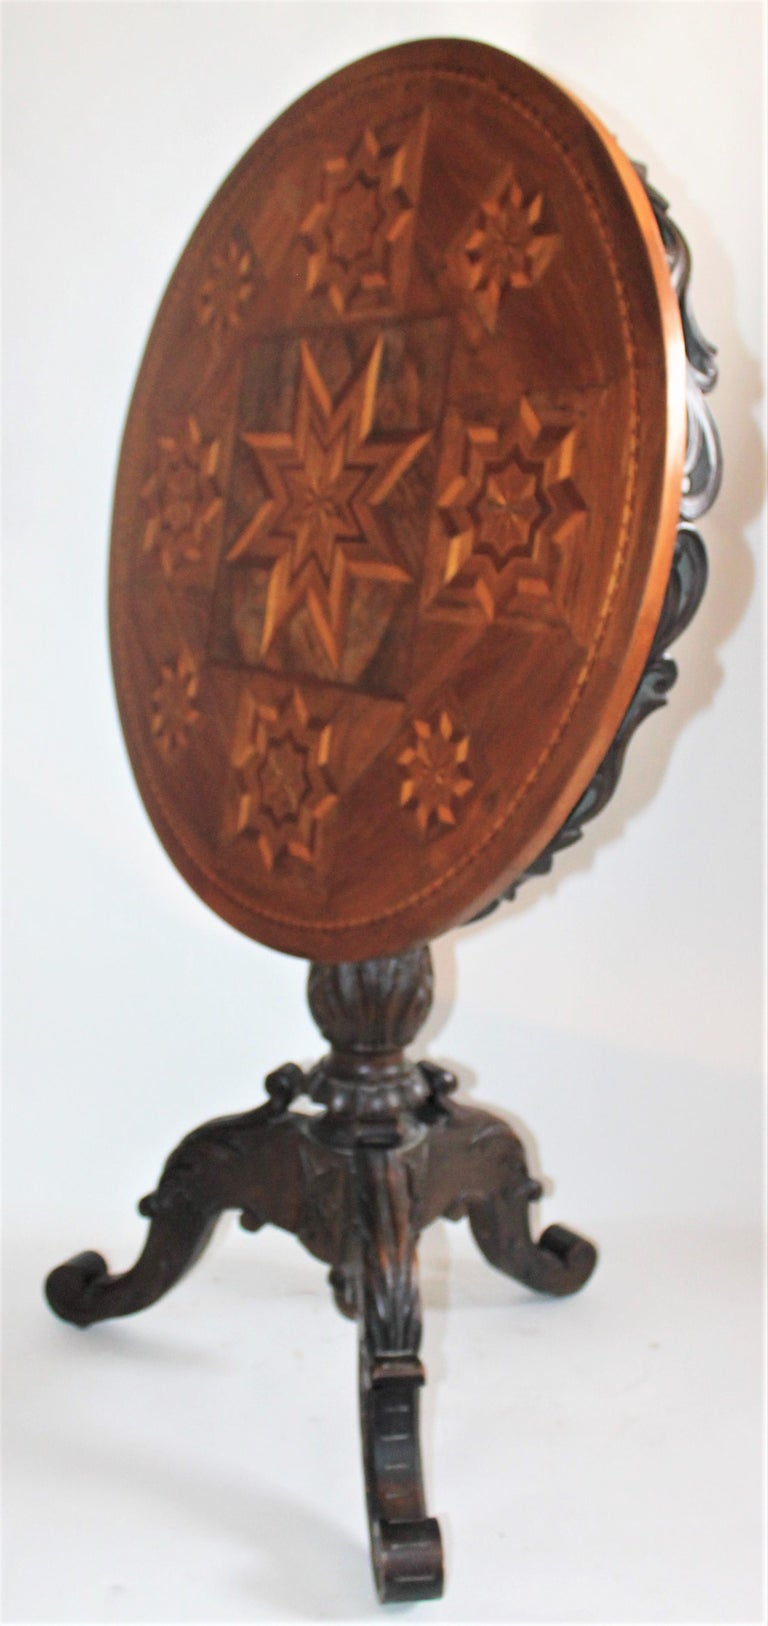 This 19th century hand-carved table with inlaid lift top has hand inlaid stars in fine condition. This fancy table is made in Switzerland and is a real collectors dream. Looks great with Folk Art or Americana collection.